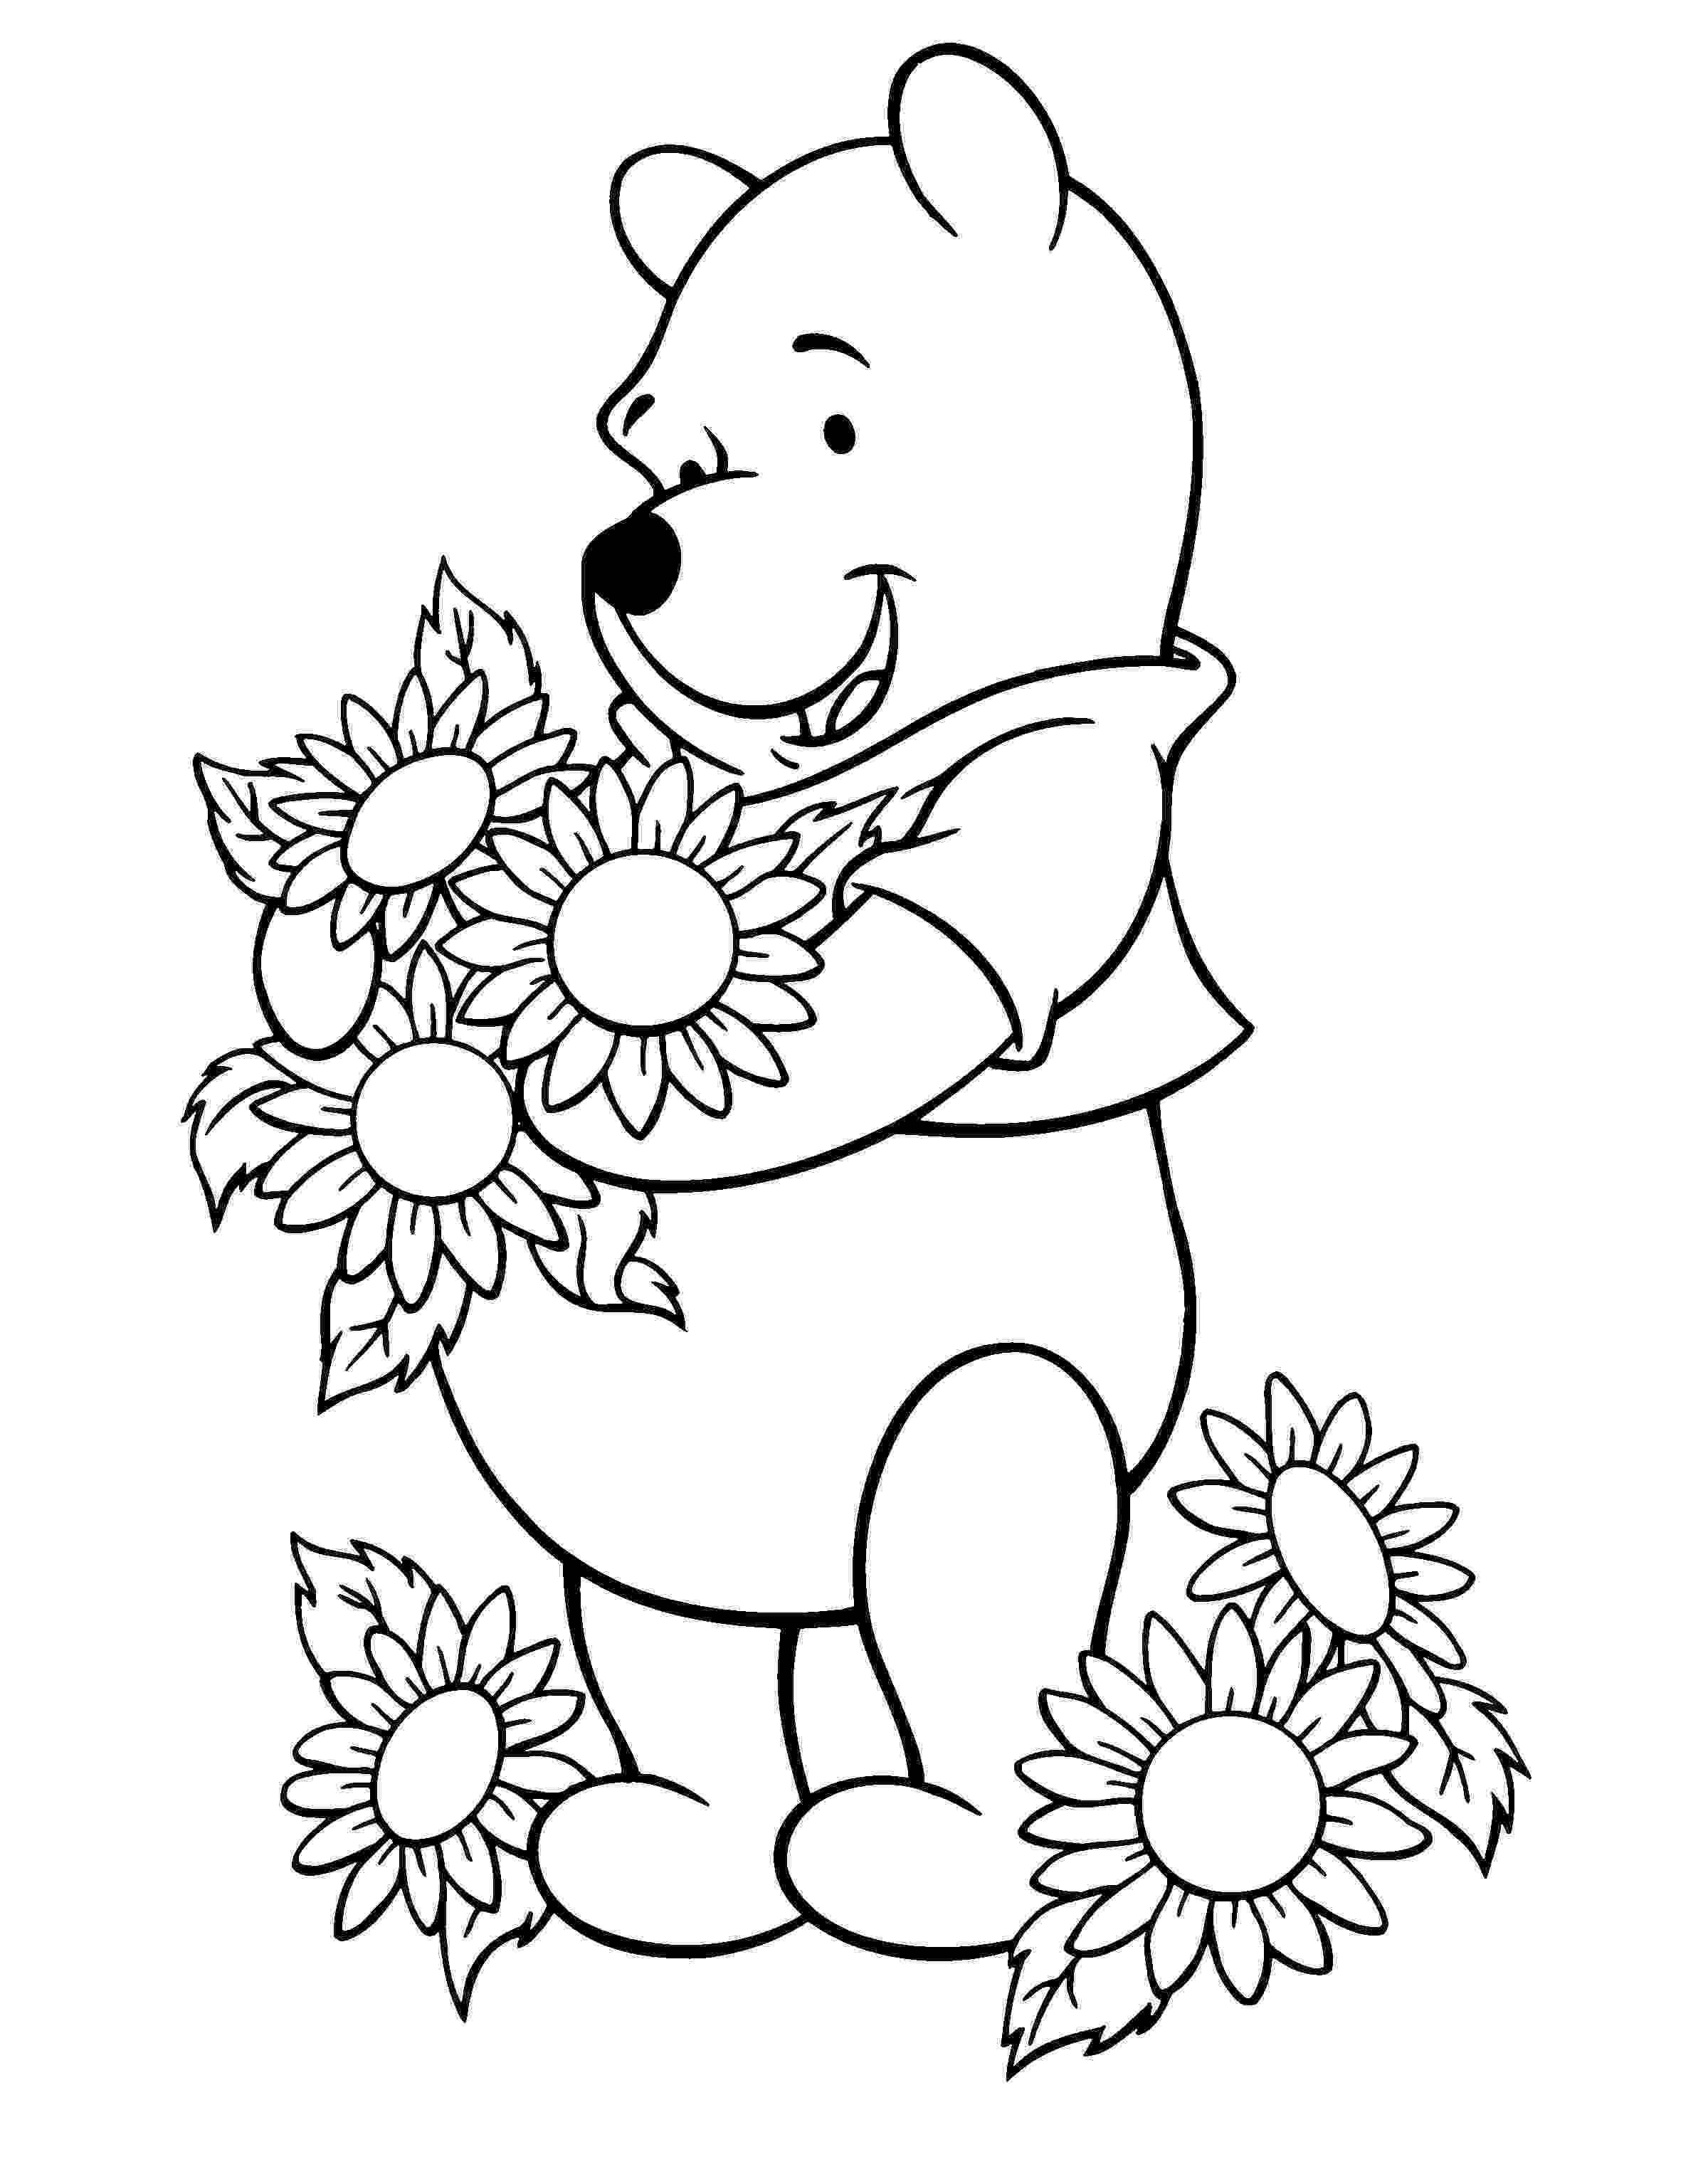 printable sunflower pictures to color sunflower coloring pages sunflower coloring pages to sunflower color pictures printable